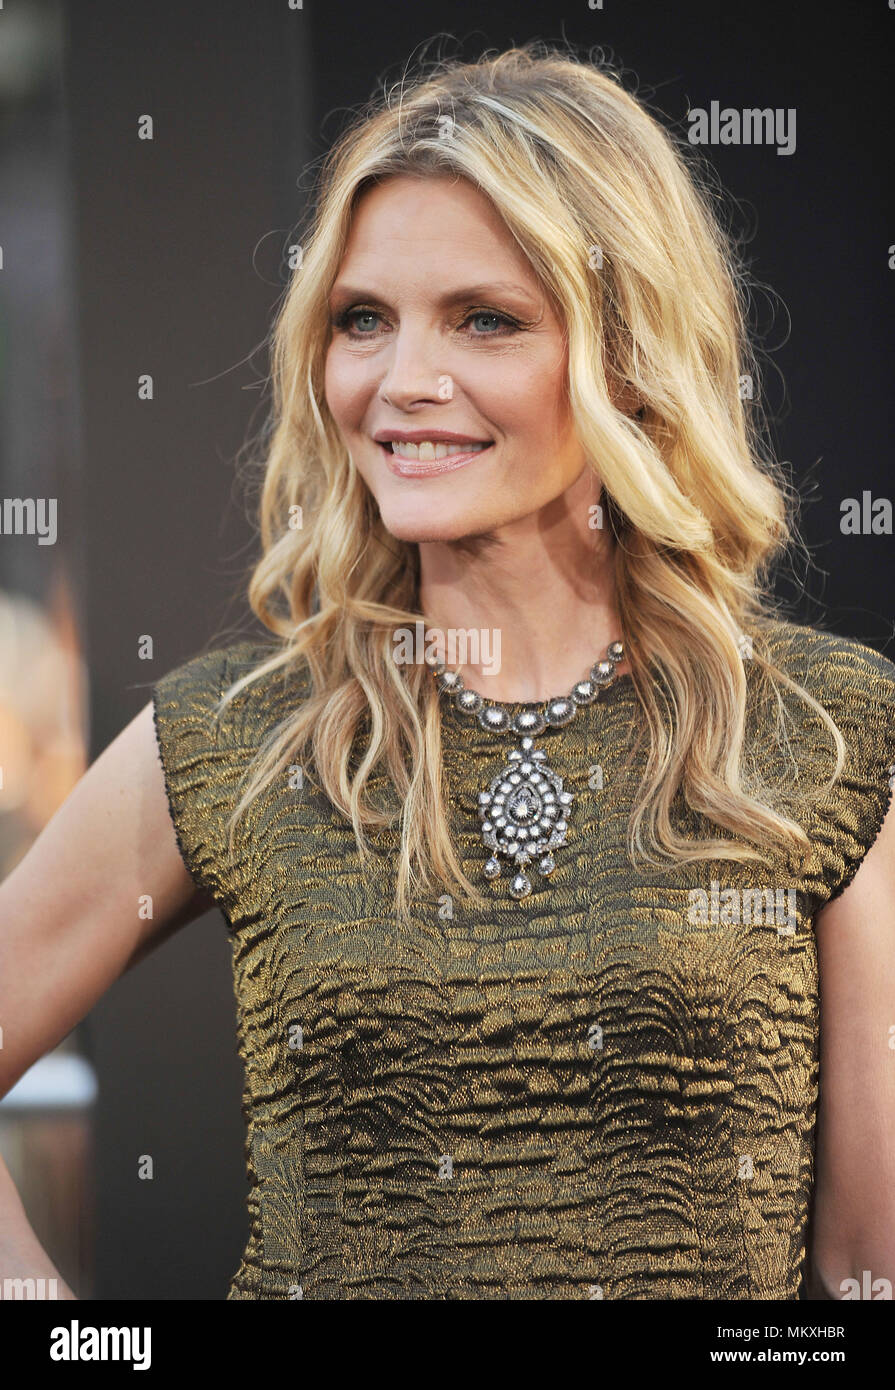 Celebrites Michelle Pfeiffer nudes (41 photo), Pussy, Cleavage, Boobs, braless 2020